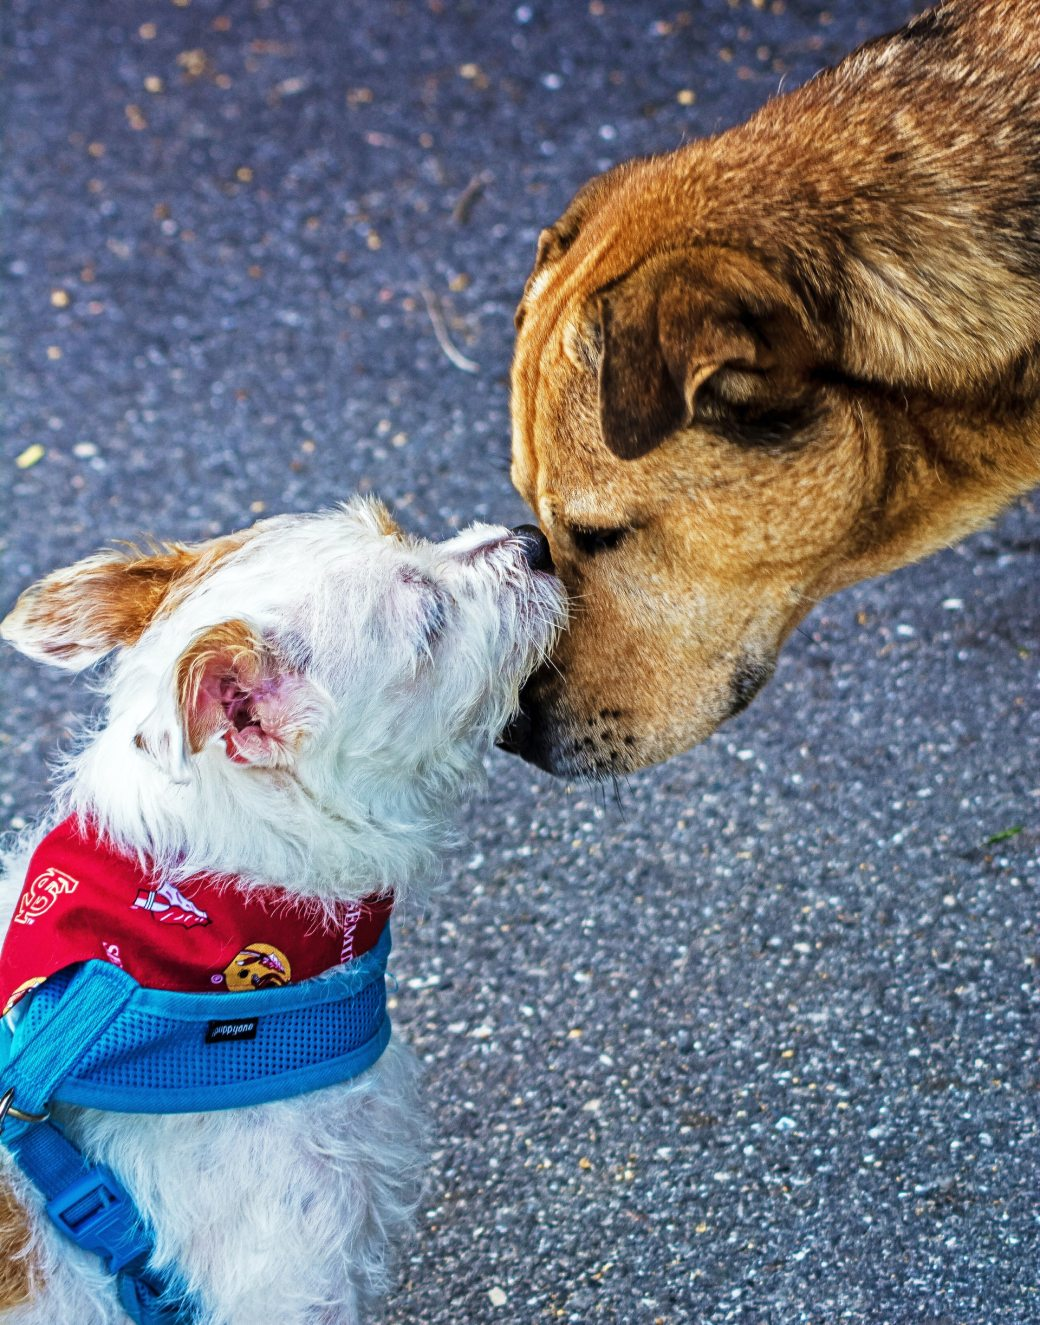 close-up-photography-of-two-dogs-1364729